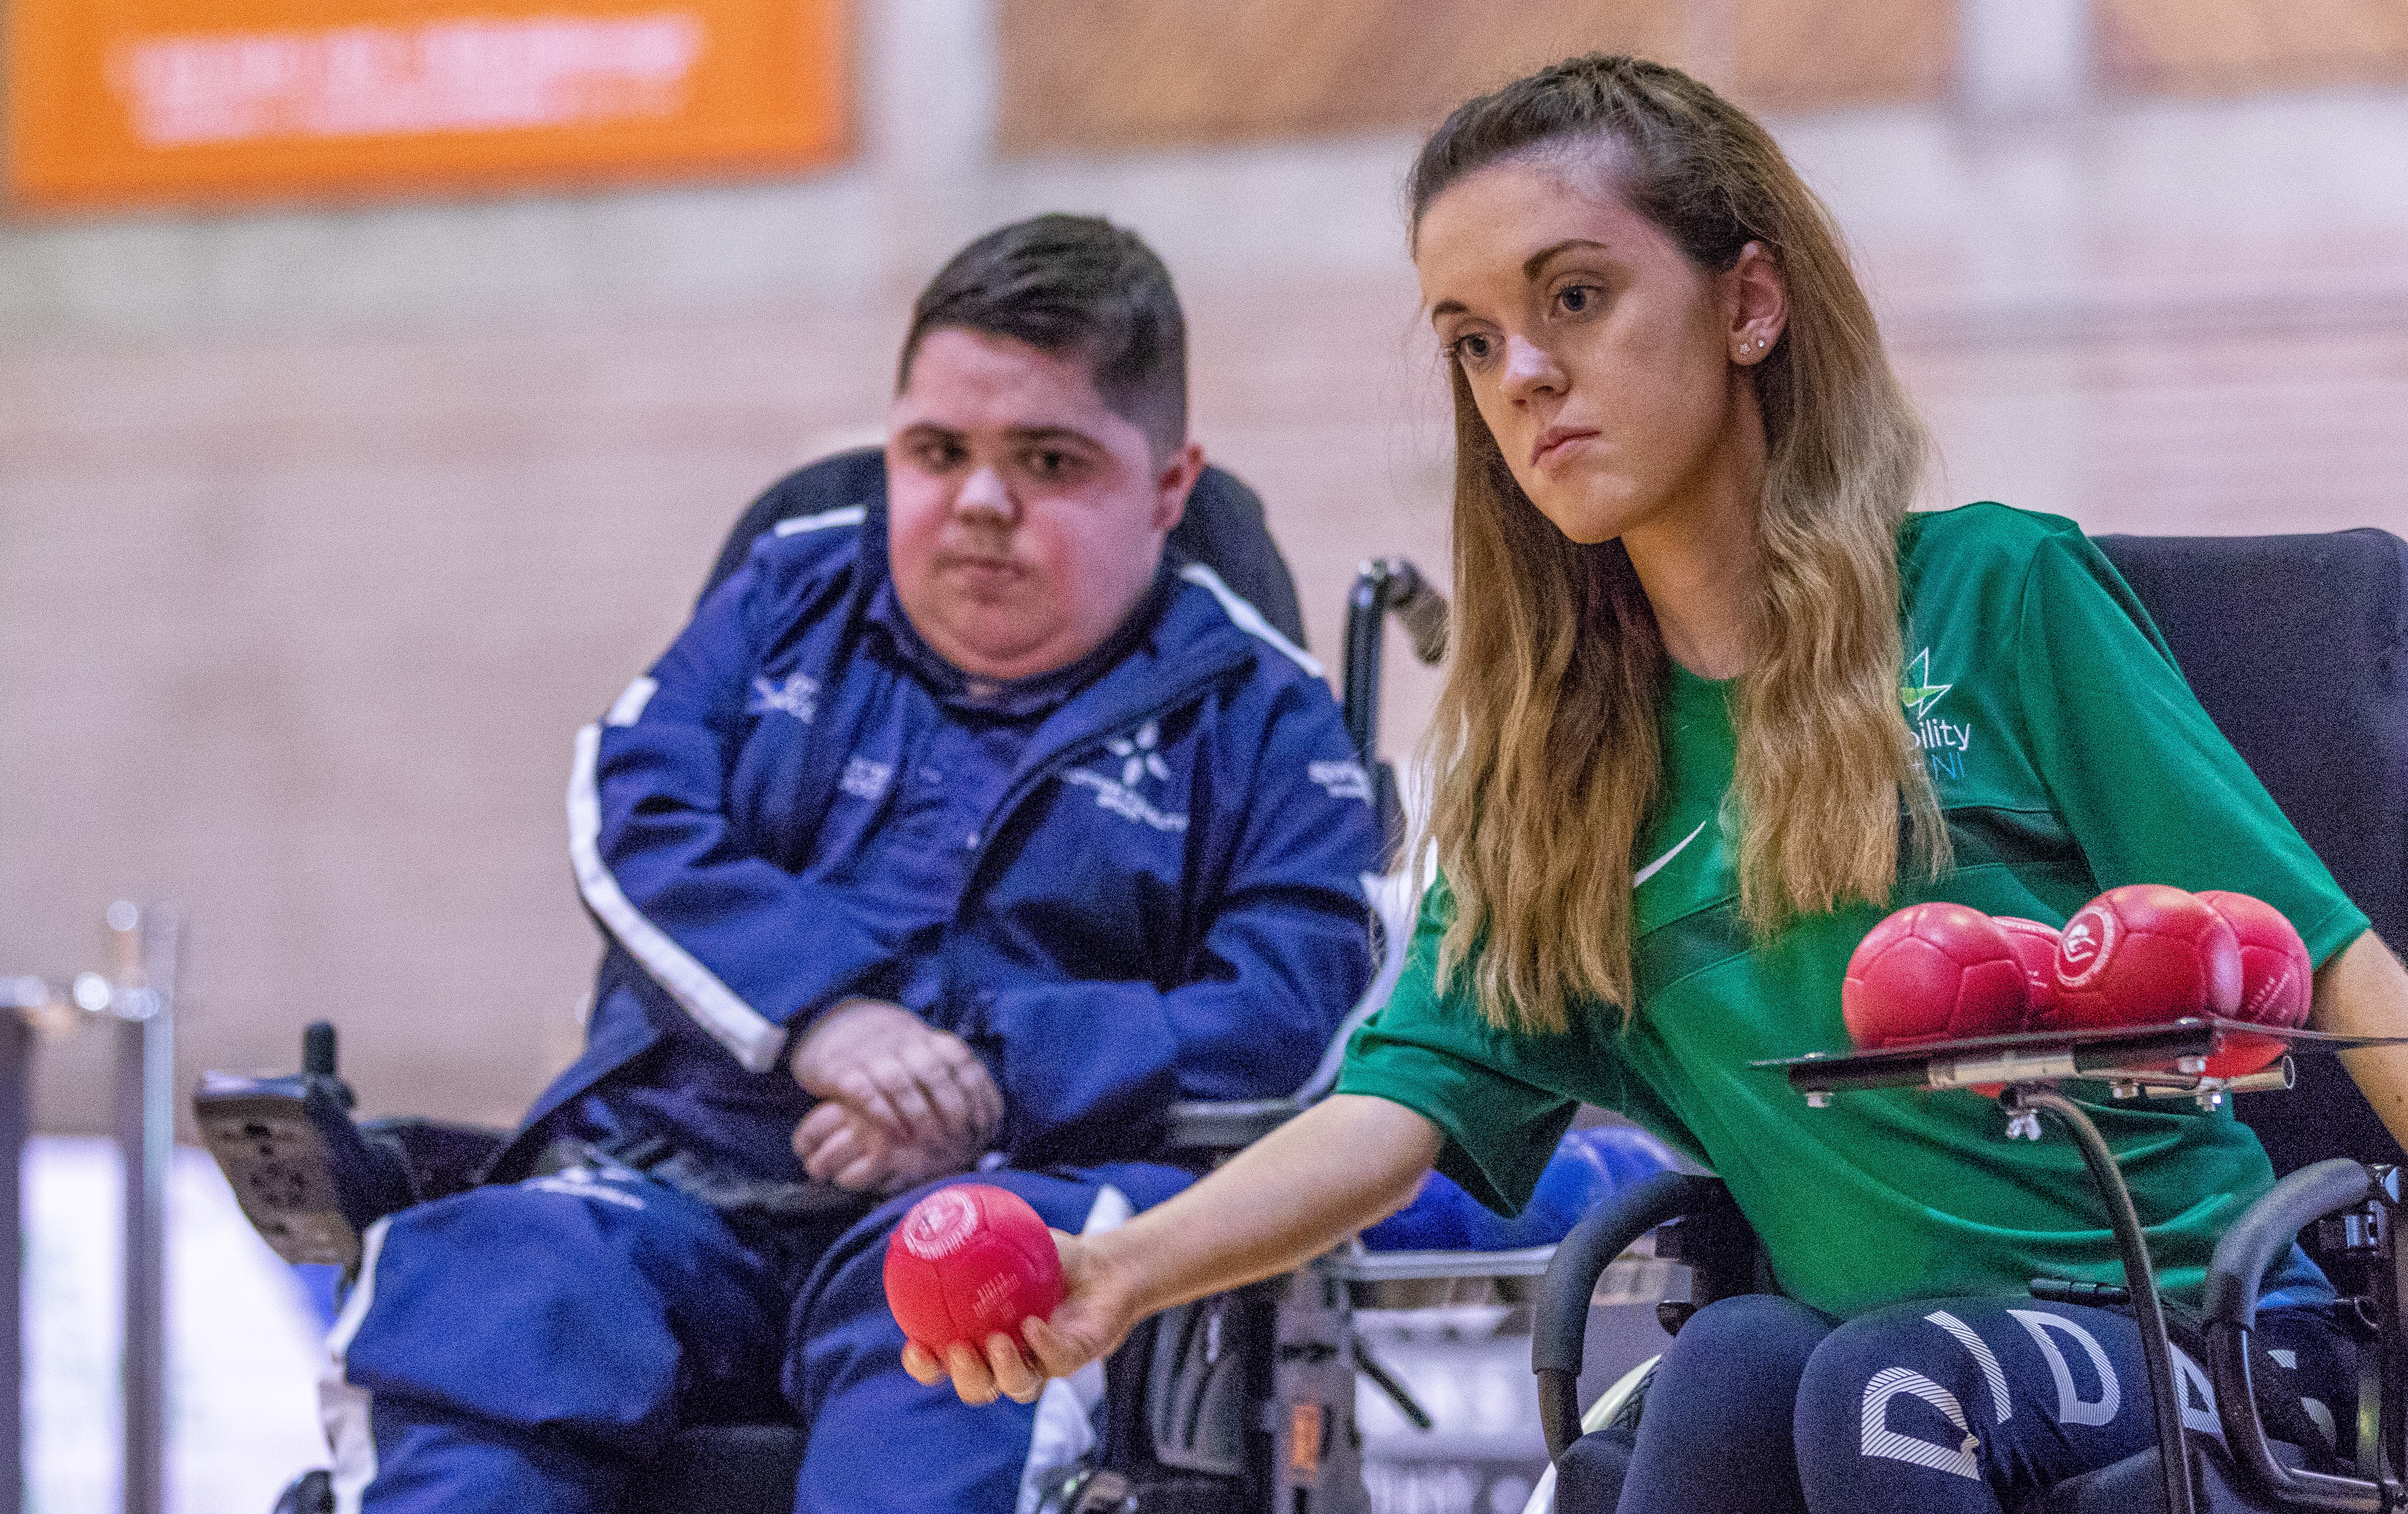 An image of Jayne Milligan about to throw the Boccia ball with her opponent looking on in the background